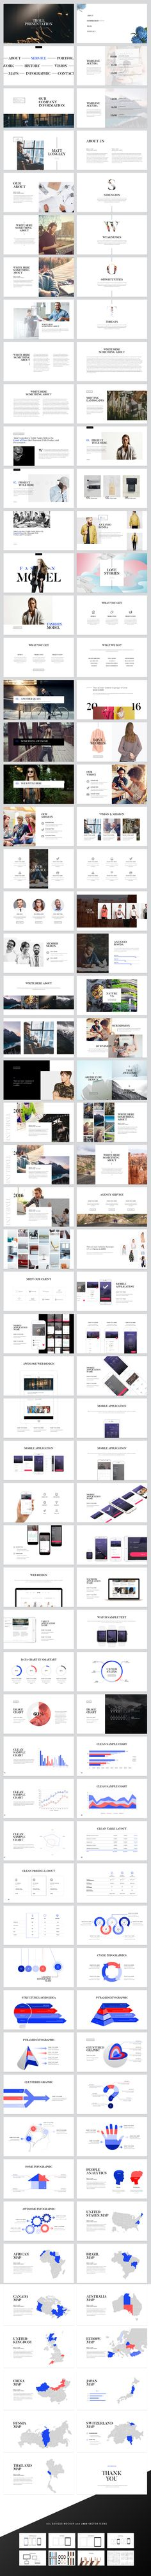 Forest powerpoint presentation template chart most download troll powerpoint keynote template toneelgroepblik